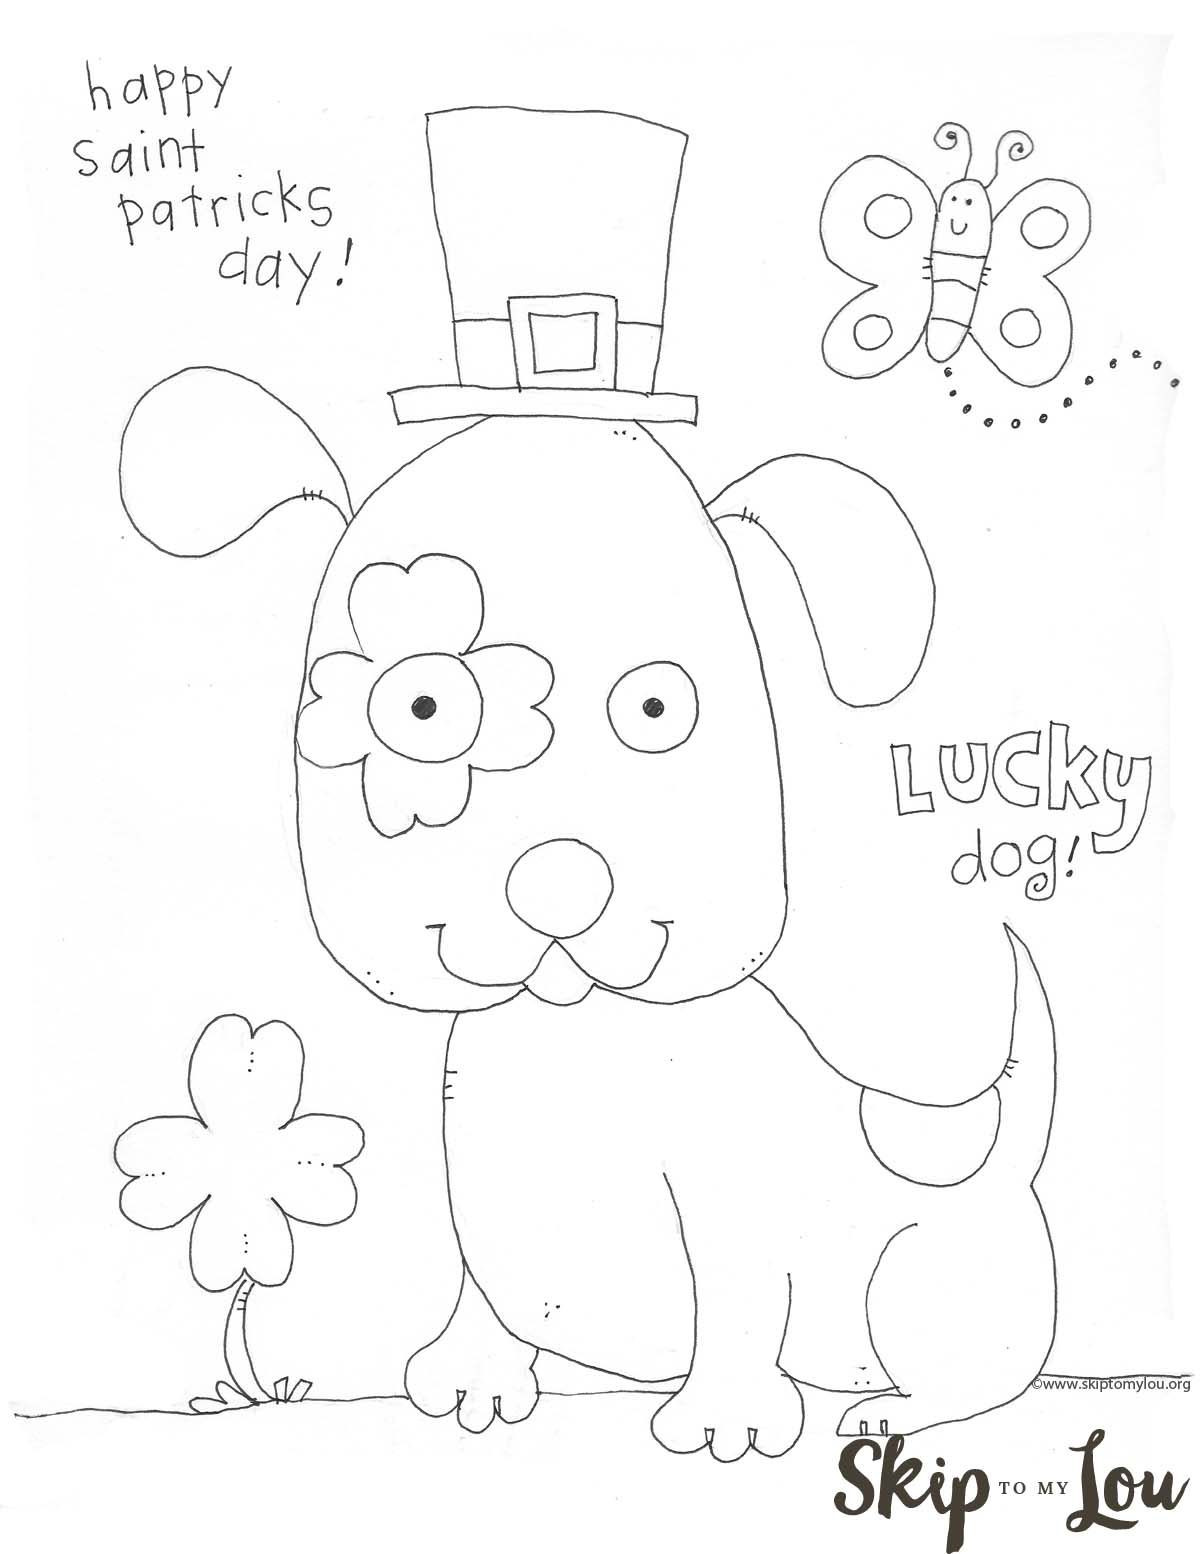 Best ideas about Free Coloring Sheets For Kids For St Patrick'S Day . Save or Pin St Patricks Day Coloring Page for Preschoolers Now.